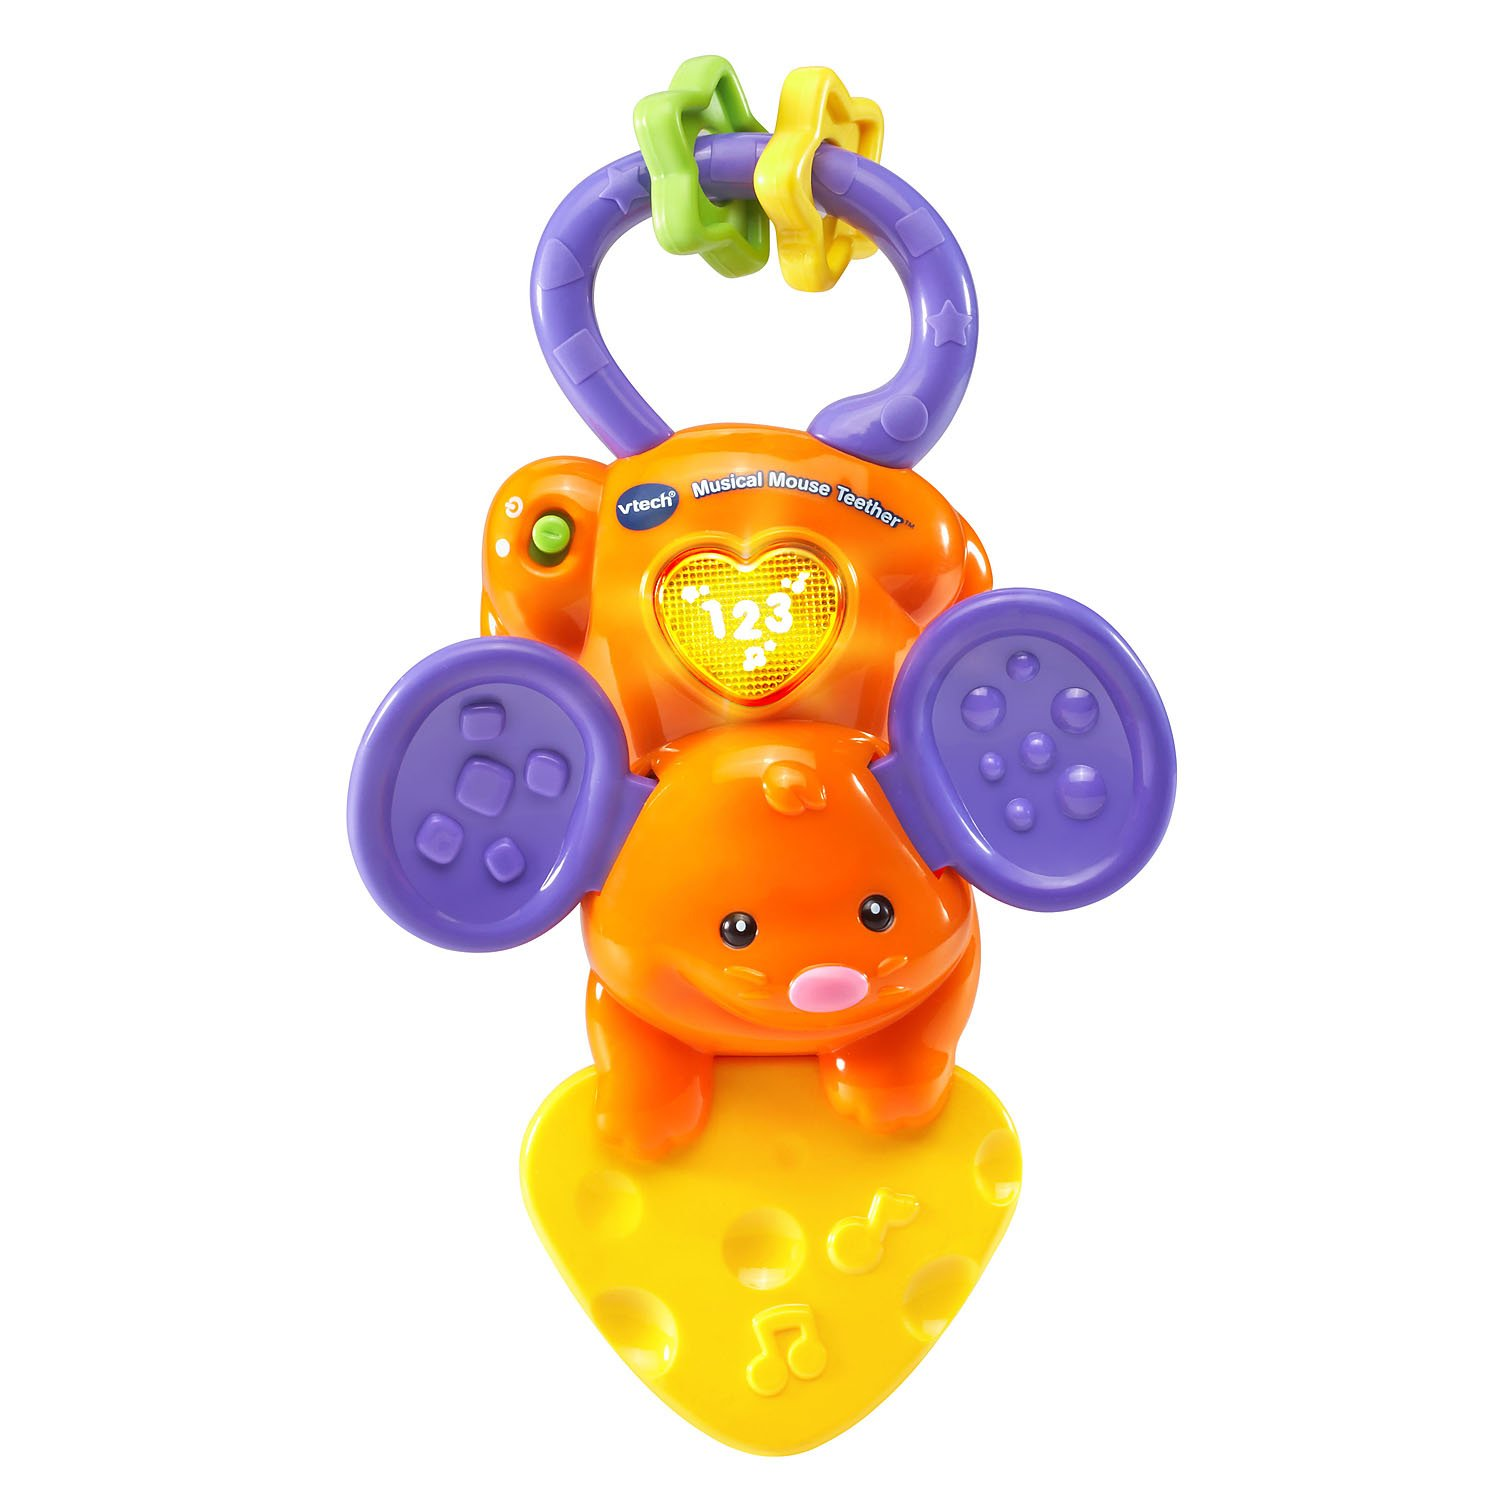 Amazon VTech Baby Musical Mouse Teether Toys & Games